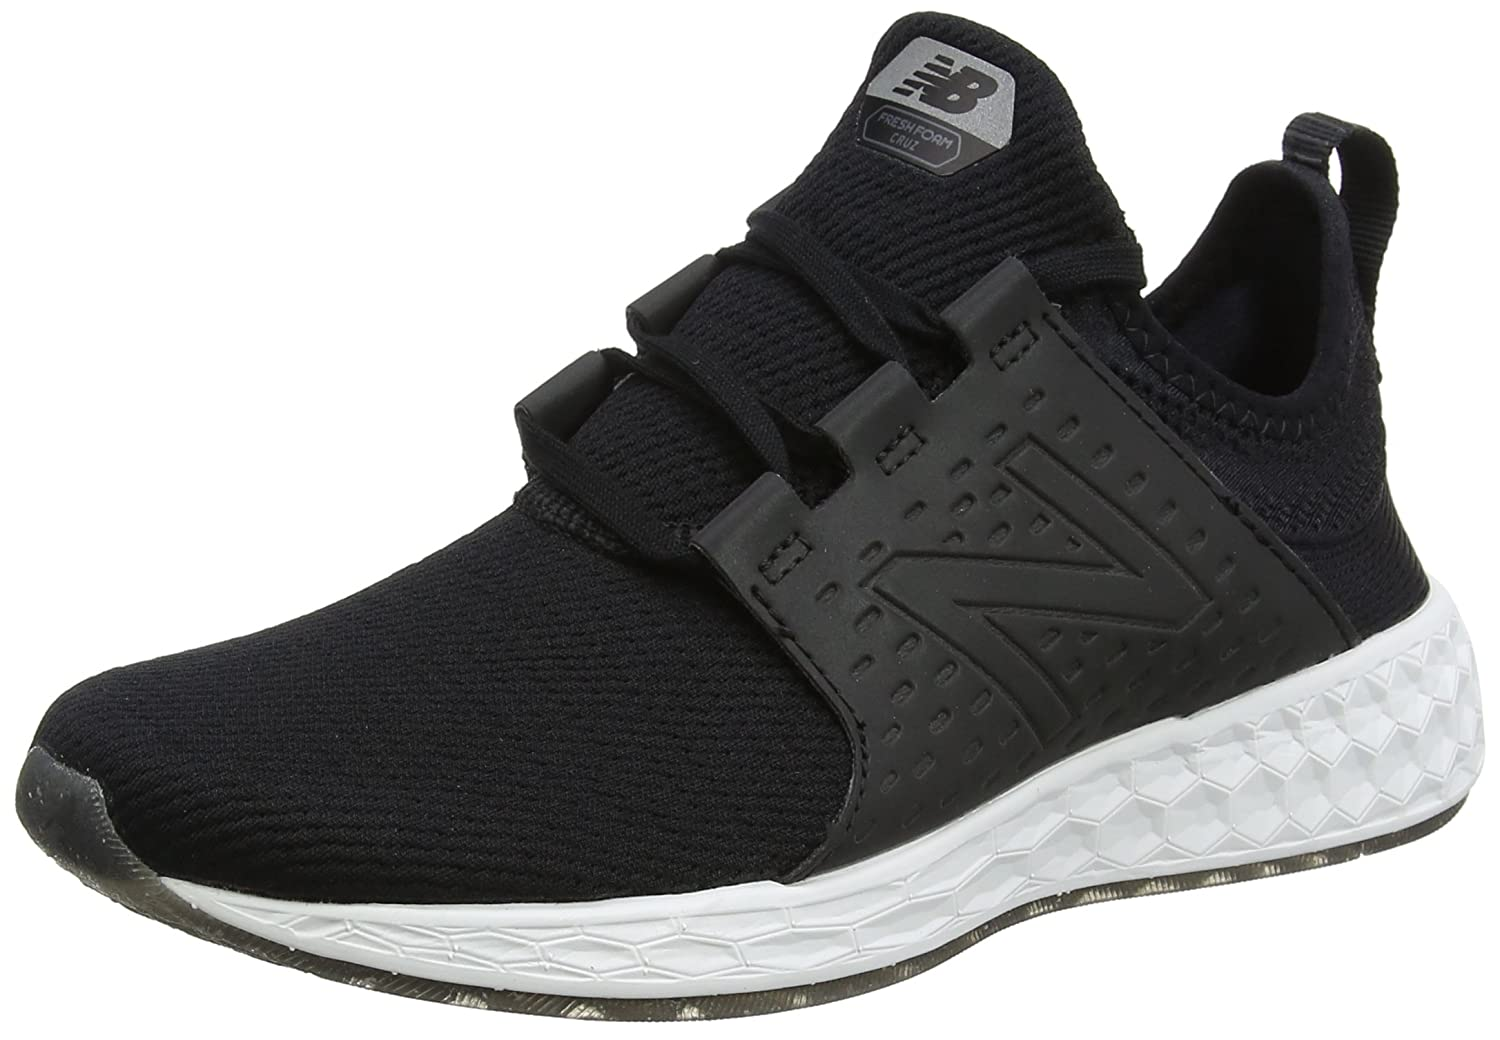 New Balance Women's Fresh Foam Cruz V1 Retro Hoodie Running Shoe B0751F8DDX 7.5 D US|black